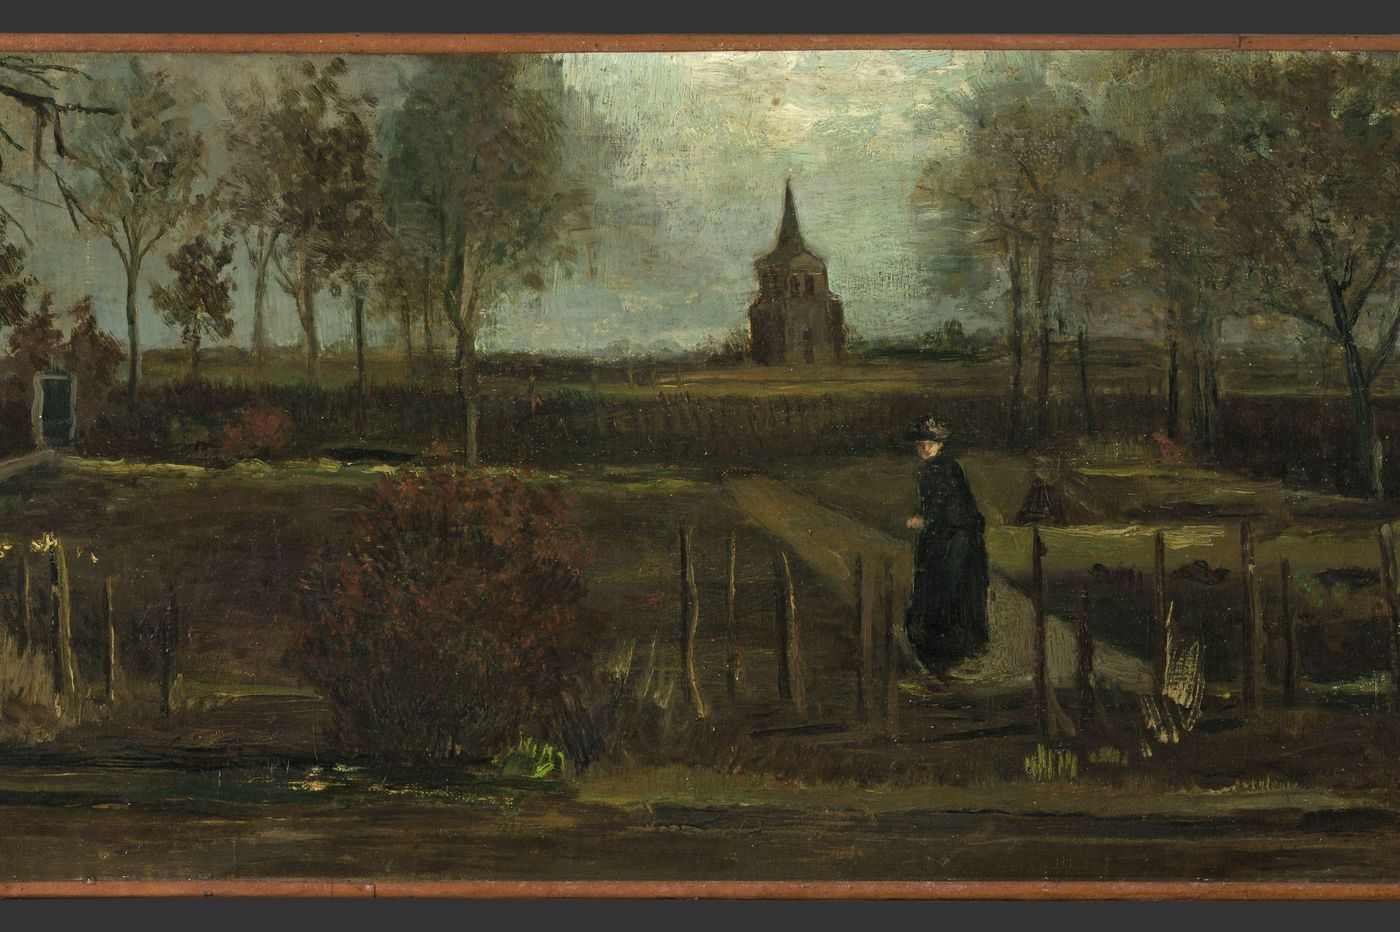 Brazen van Gogh theft raises alarms about crimes of opportunism during the coronavirus crisis